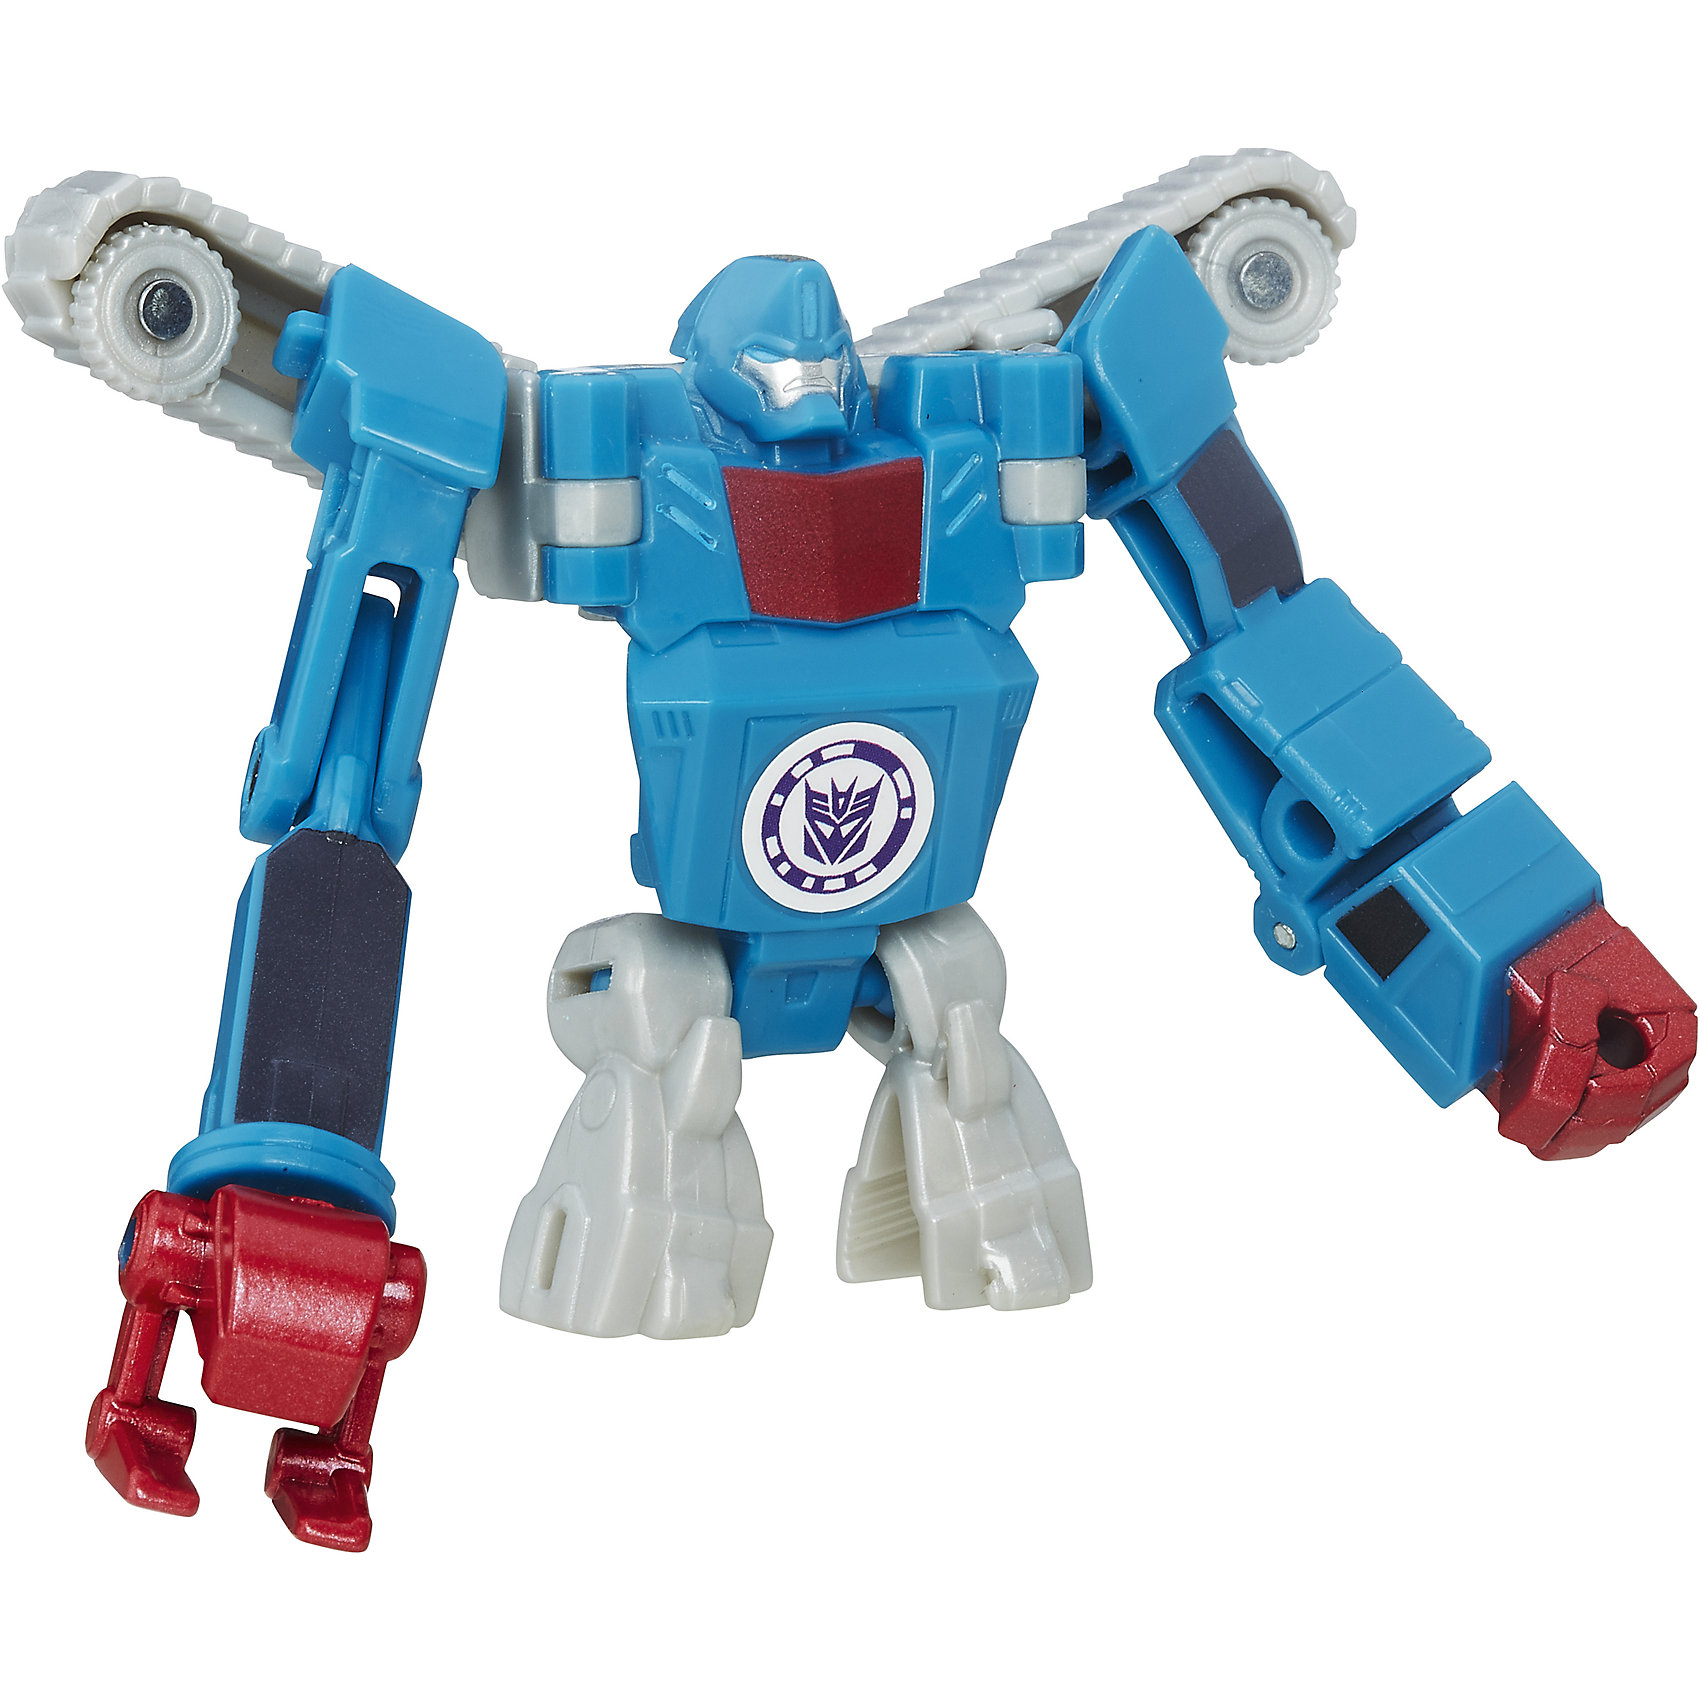 Hasbro Роботс-ин-Дисгайс  Легион, Трансформеры, B0065/B7046 hasbro hasbro трансформеры robots in disguise autobot drift